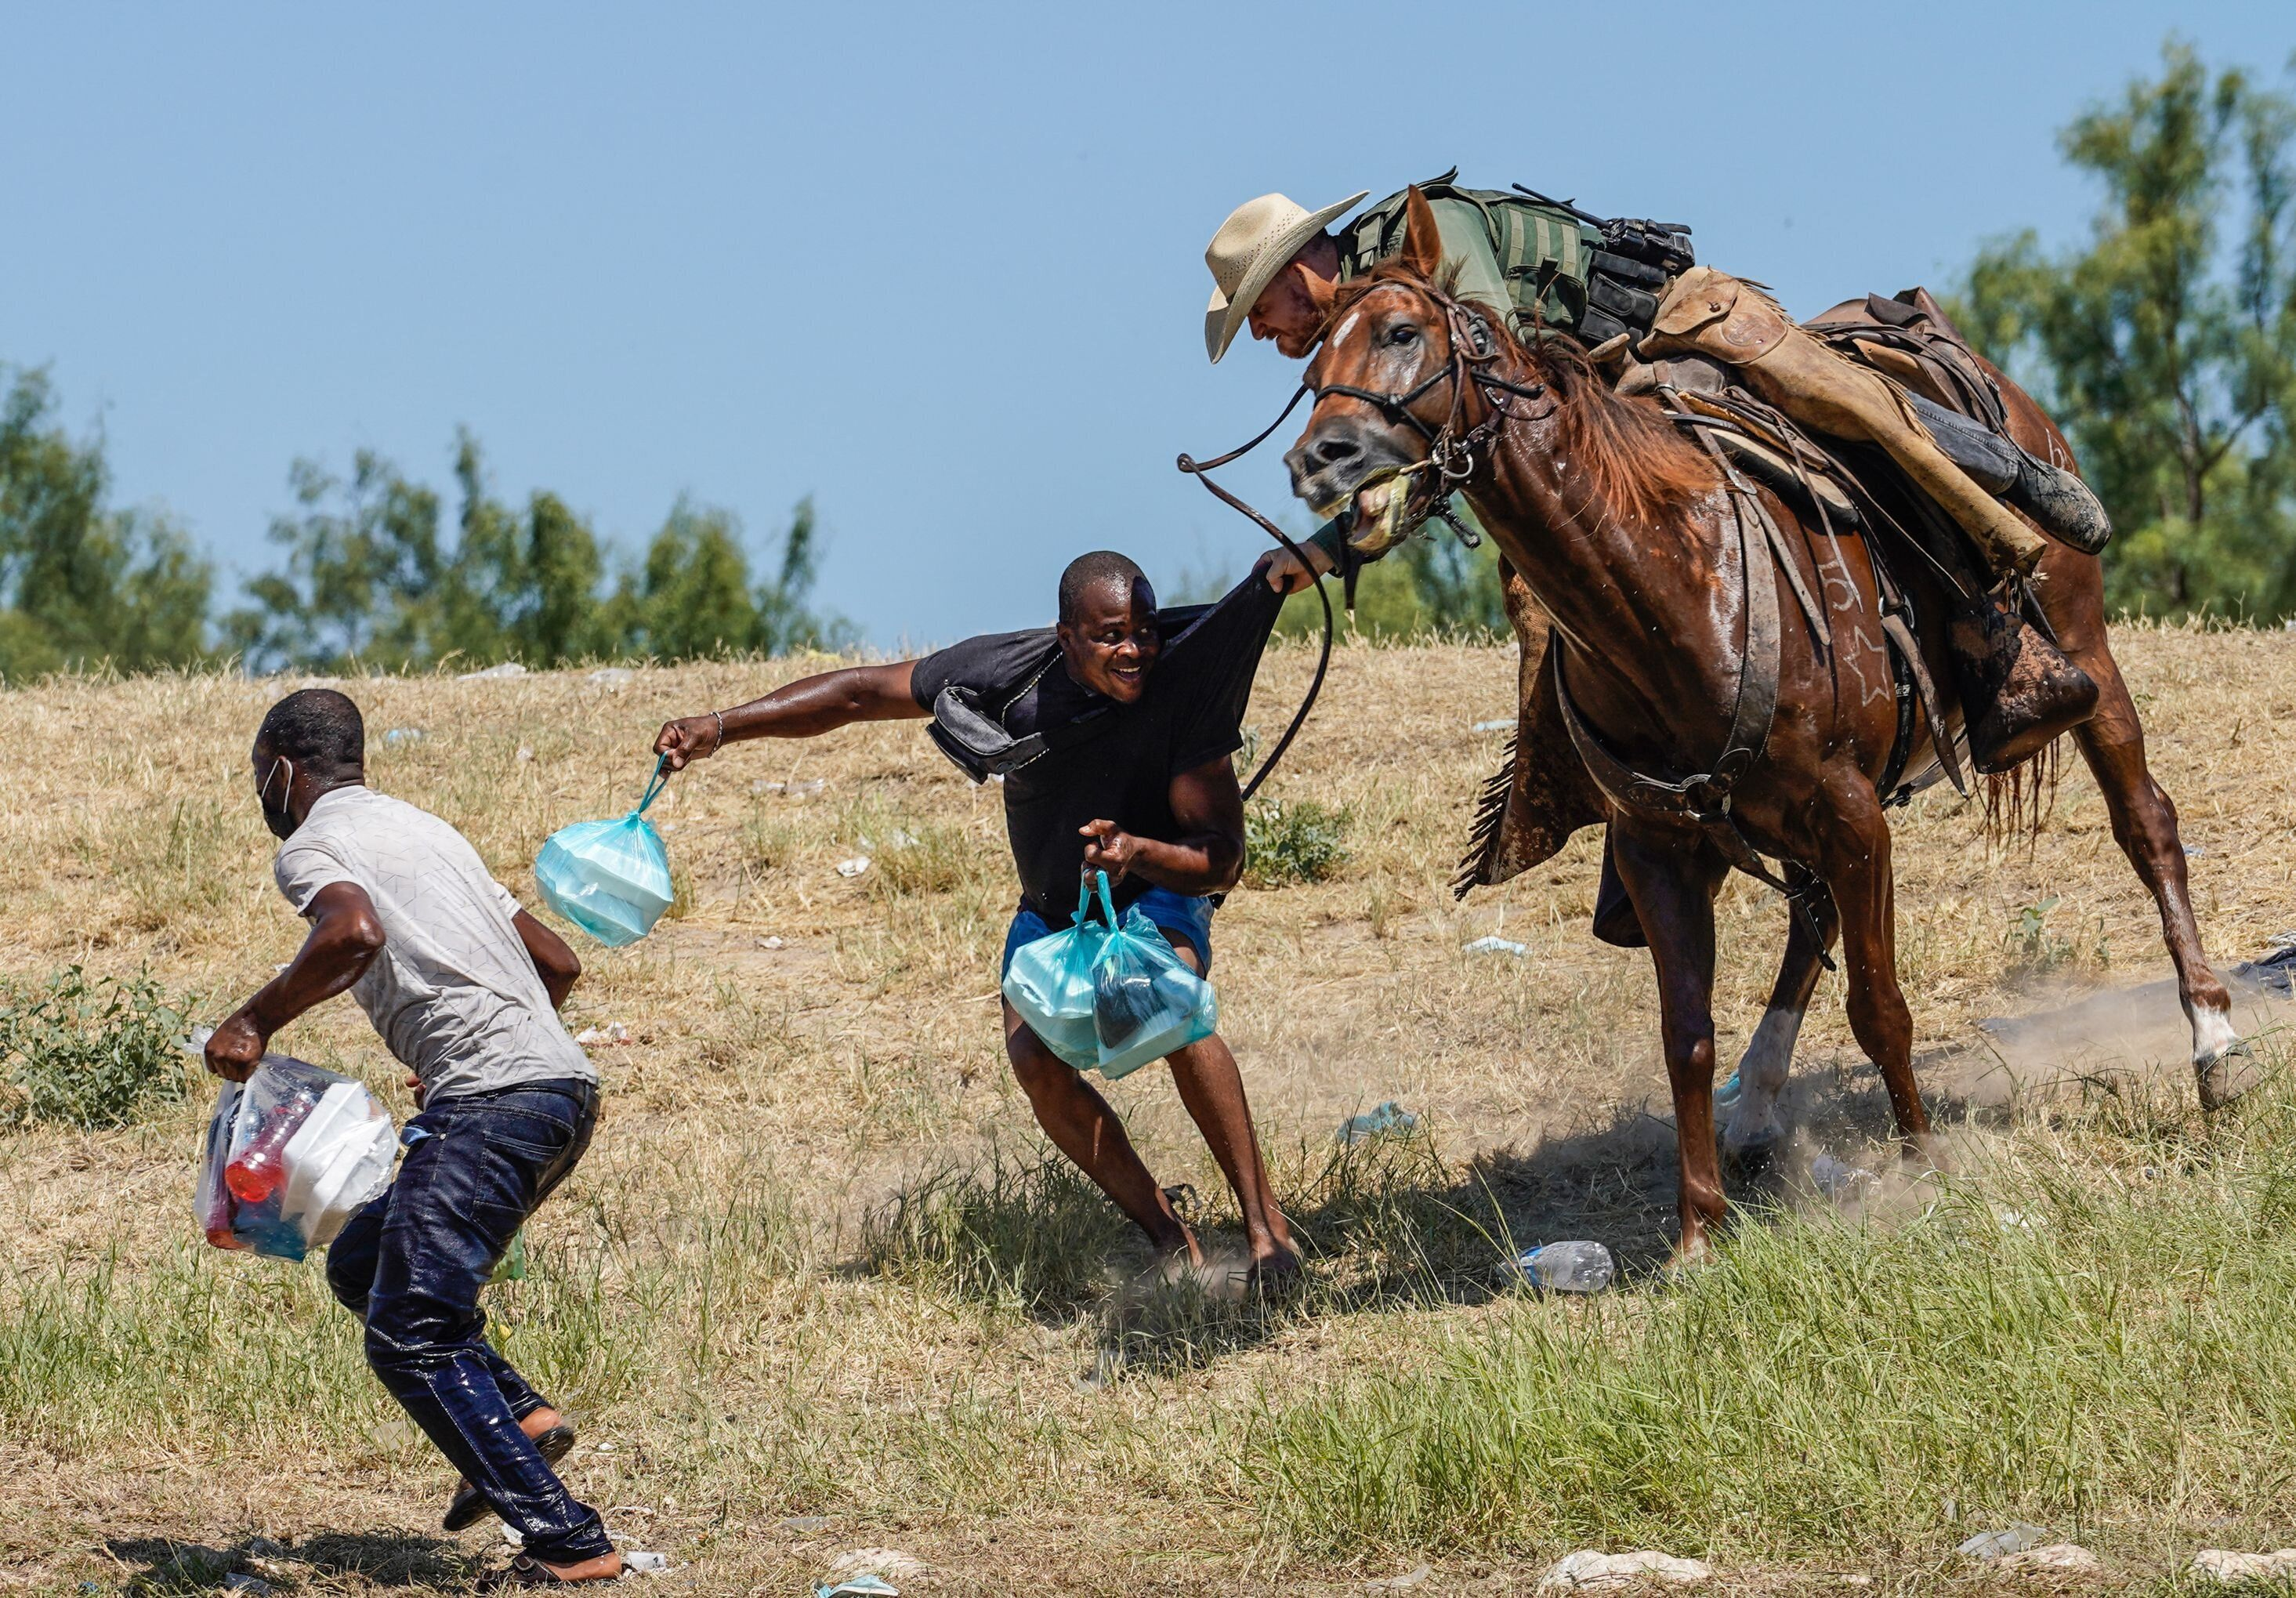 A Border Patrol agent on horseback tries to stop a Haitian migrant from entering an encampment in Del Rio, Texas, on Sept. 19